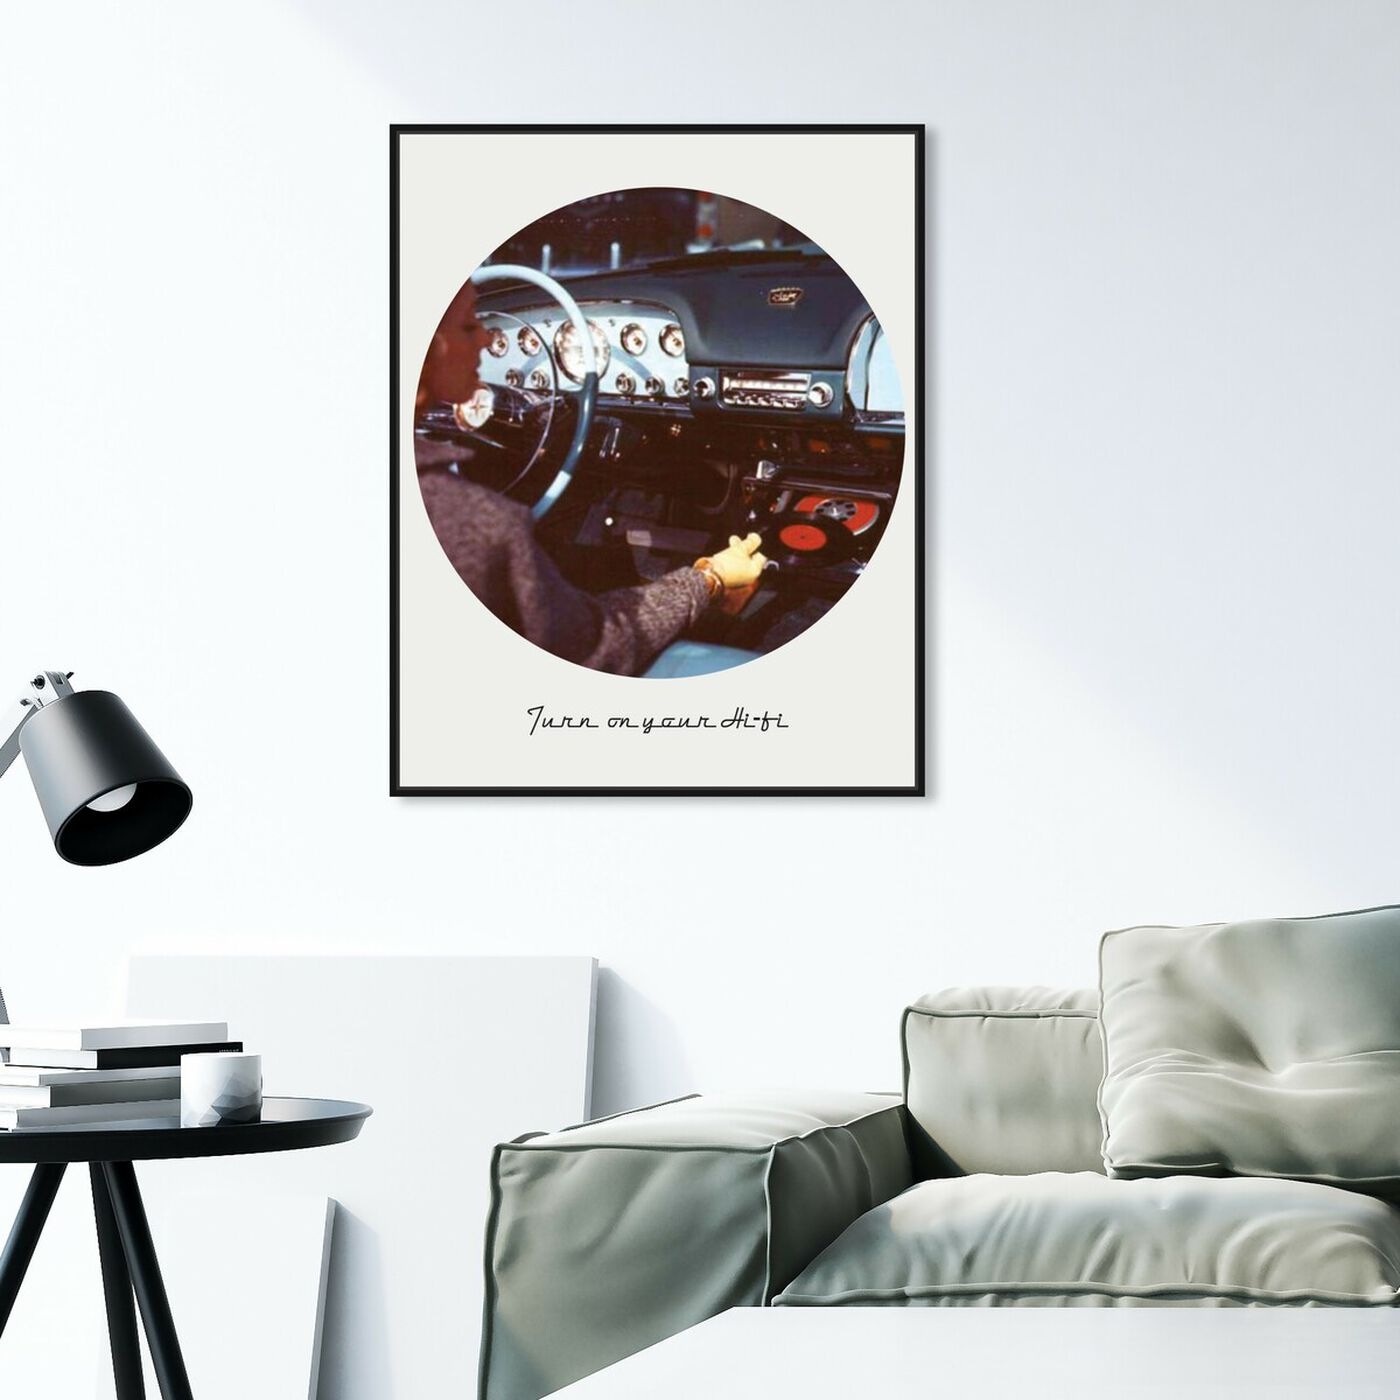 Hanging view of Turn on your HiFi featuring transportation and automobiles art.